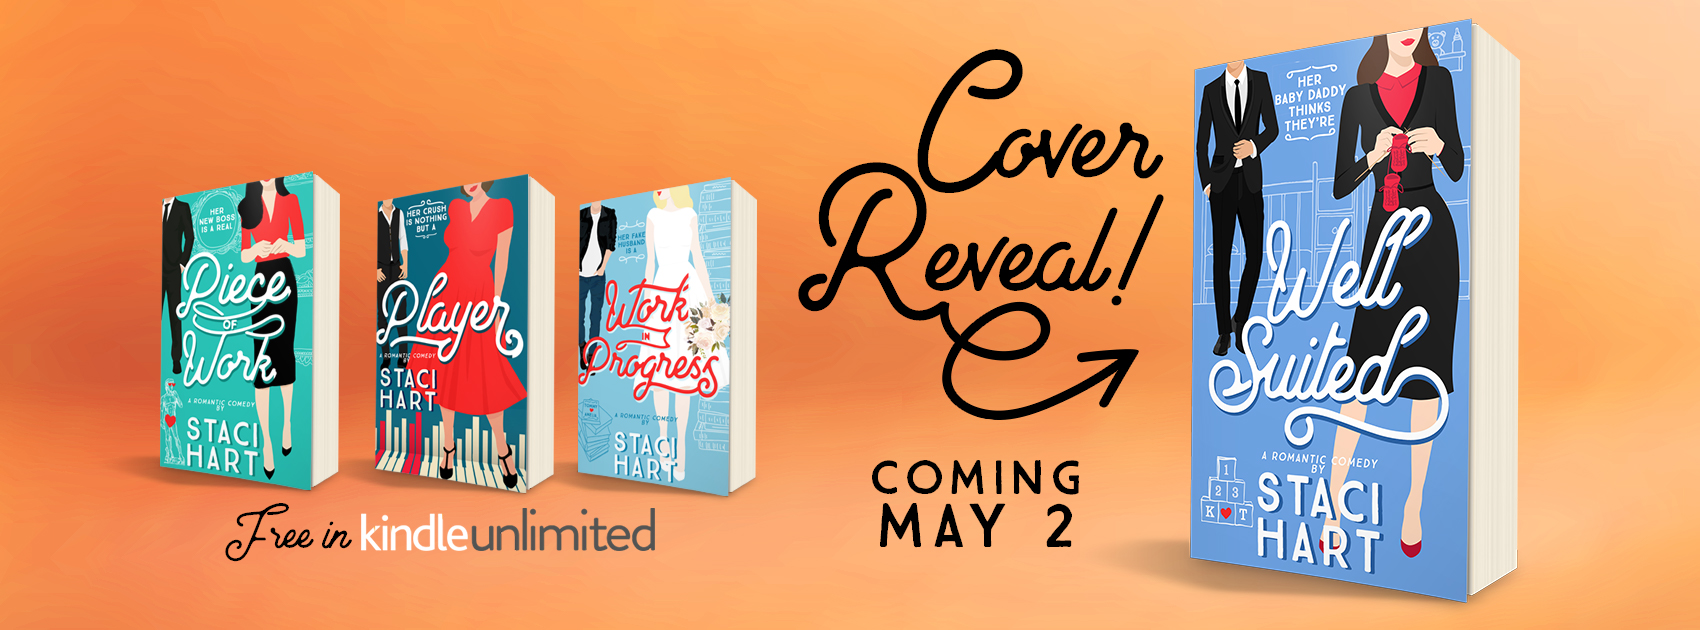 Cover Reveal: Well Suited by Staci Hart